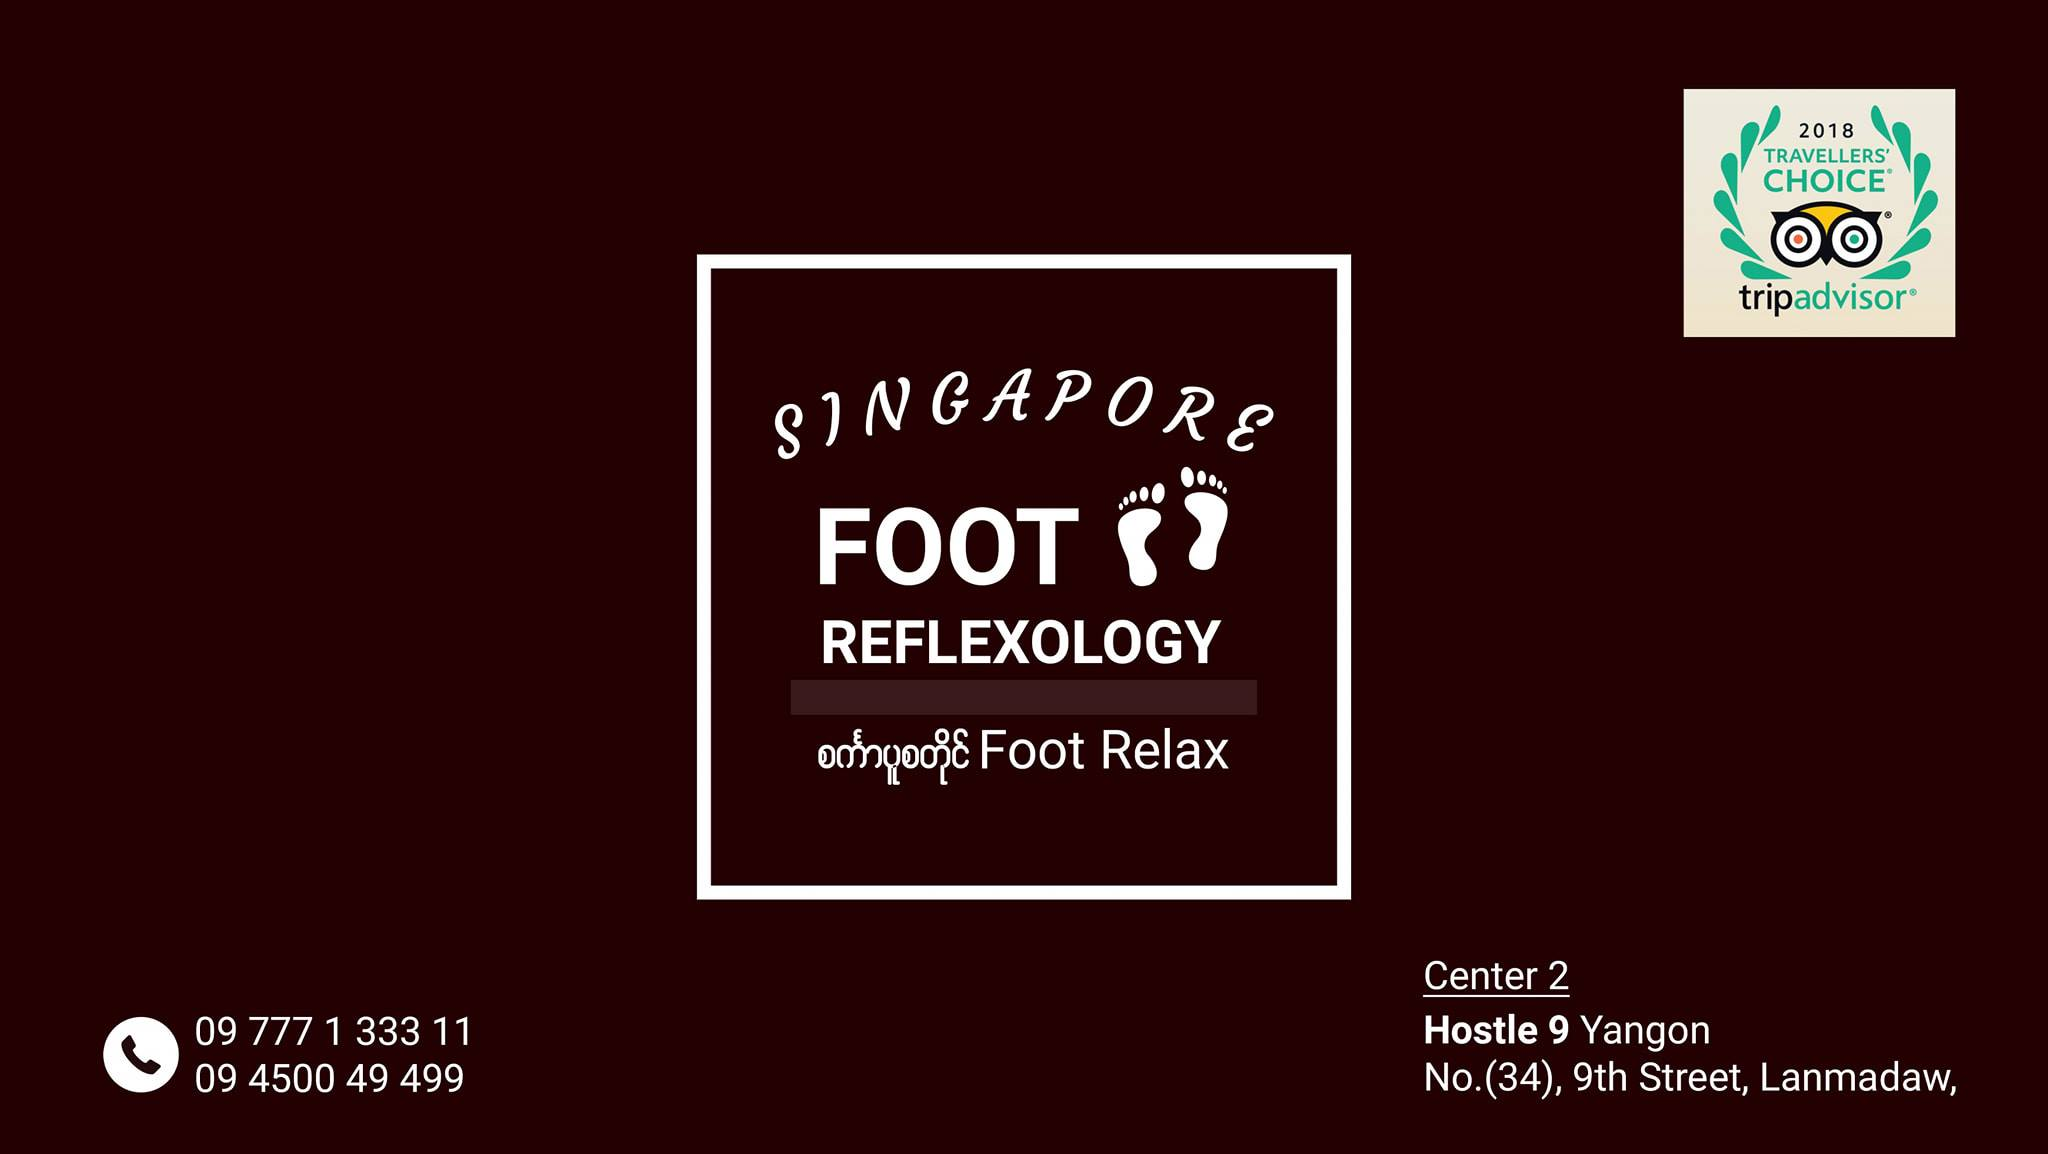 Singapore Foot reflexology